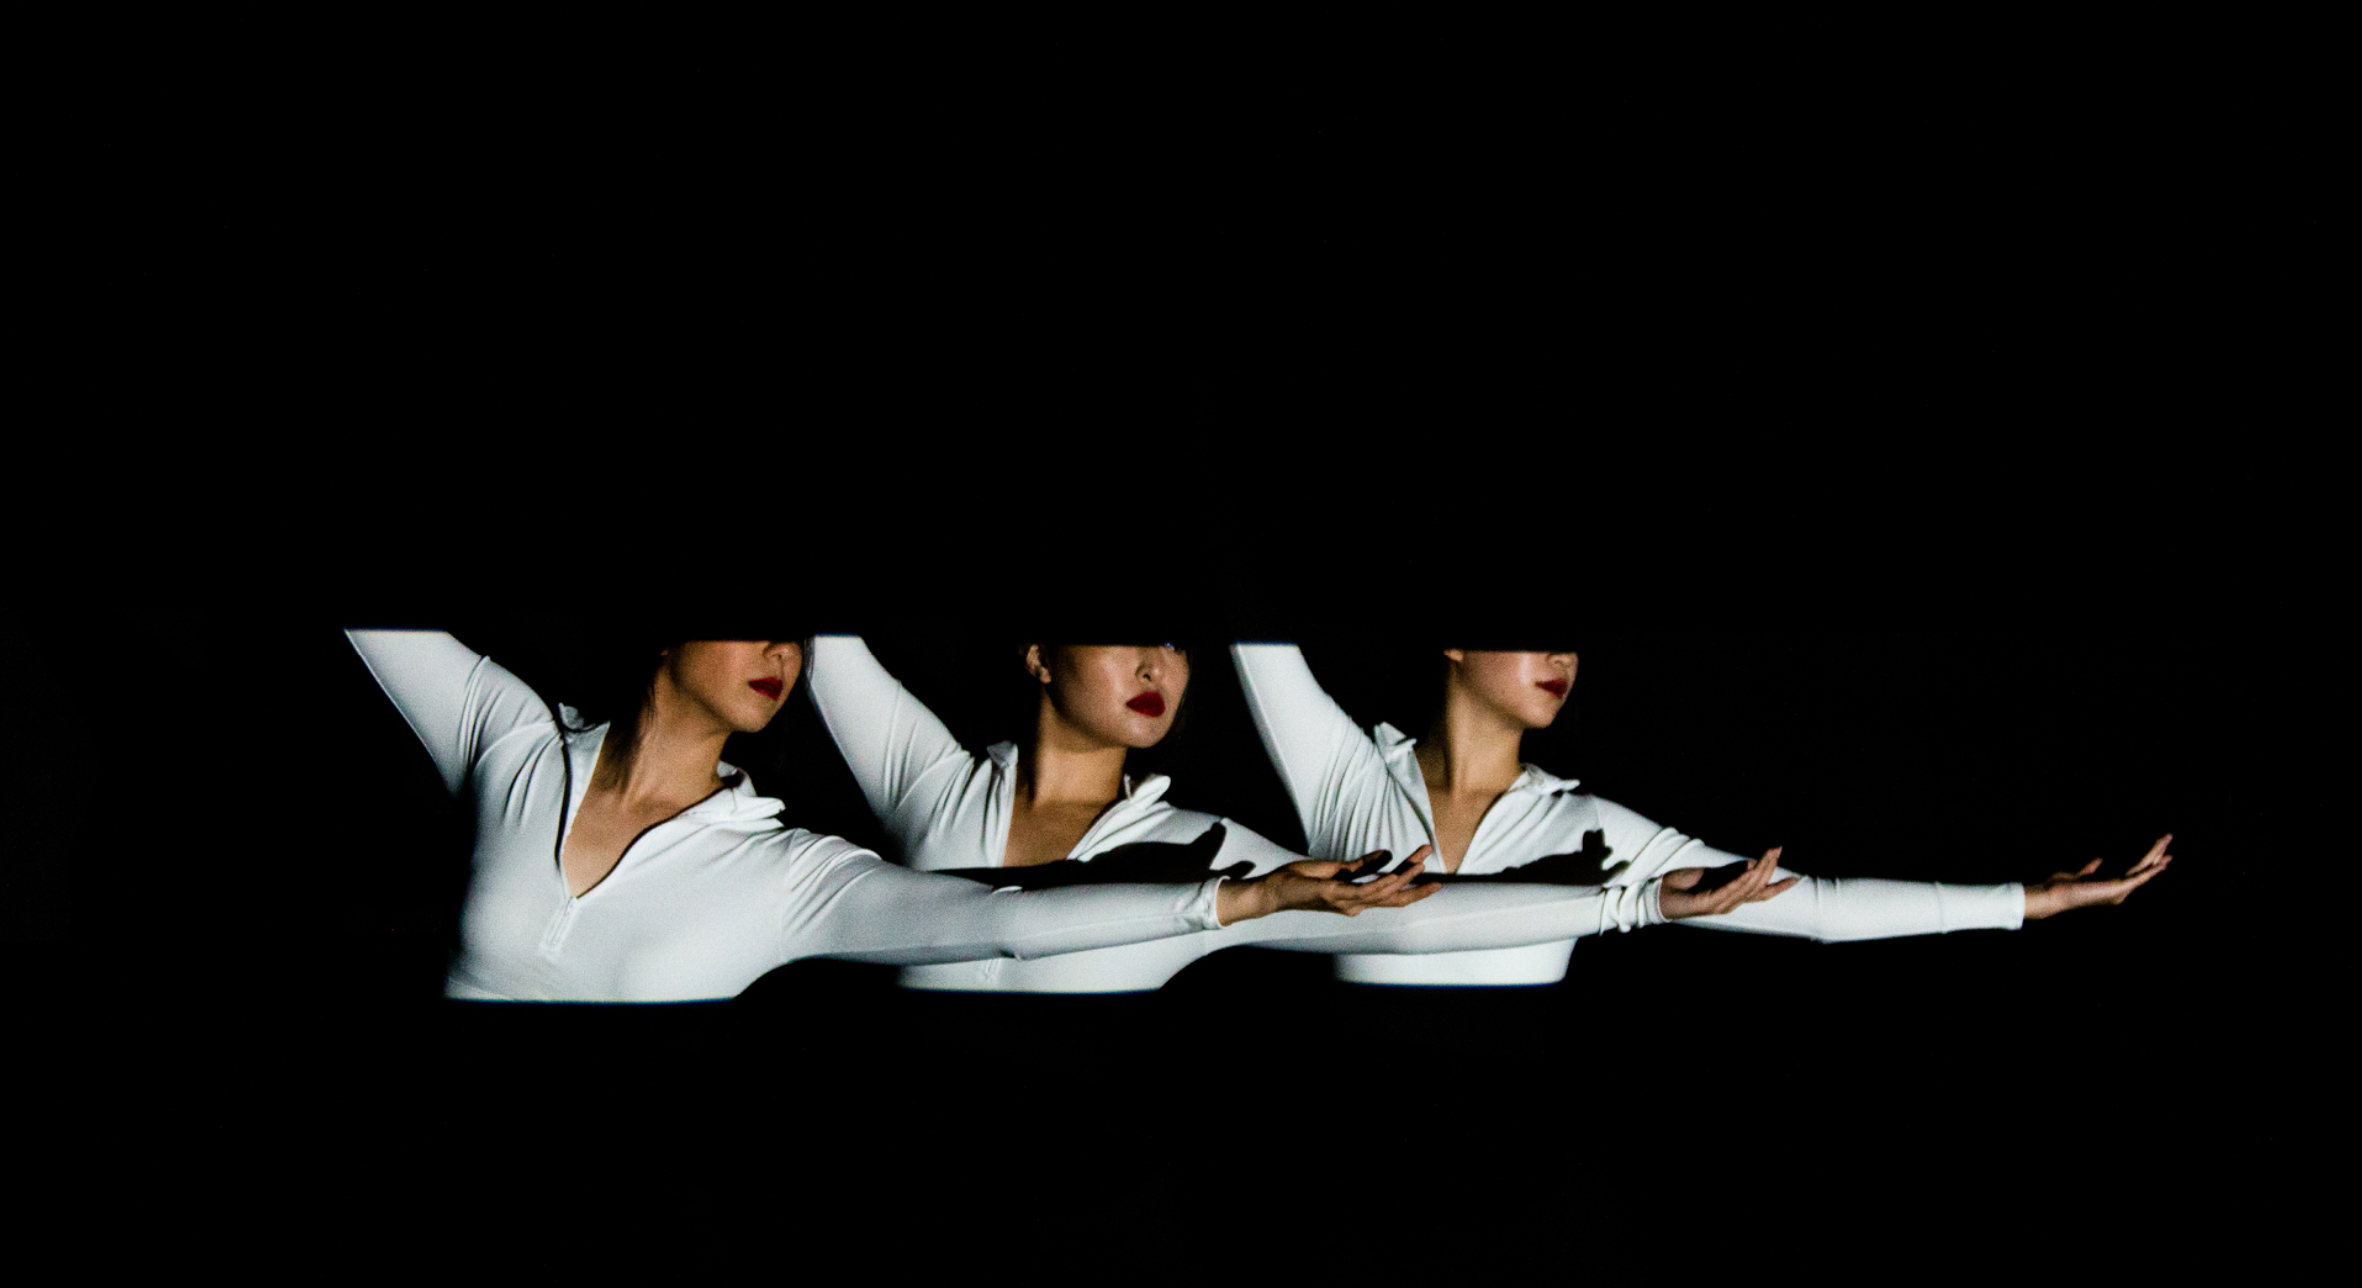 Frame    Figure ground compositions animated through projected light highlight specific movements of choreography, as these three dancers move in and out of each others' frames.  Shot May 2018  Live Performance location - Evoke Dance Studio  Dancers - Joann Hsu, Jaclyn Wang, and Nina Wang  Creative Directors - Erin Cuevas, Philip Lu, and Joy Dayaw  Choreographers - Phillip Lu, Joy Dayaw  Producers - Erin Cuevas, Jana Masset Collatz, Jan Collatz, Joy Dayaw, and Philip Lu  Editor - Luke Kraman  Director of Photography and Colorist - Philips Shum  First Assistant Camera - Mark Armenta  Gaffer - Jamers Suter